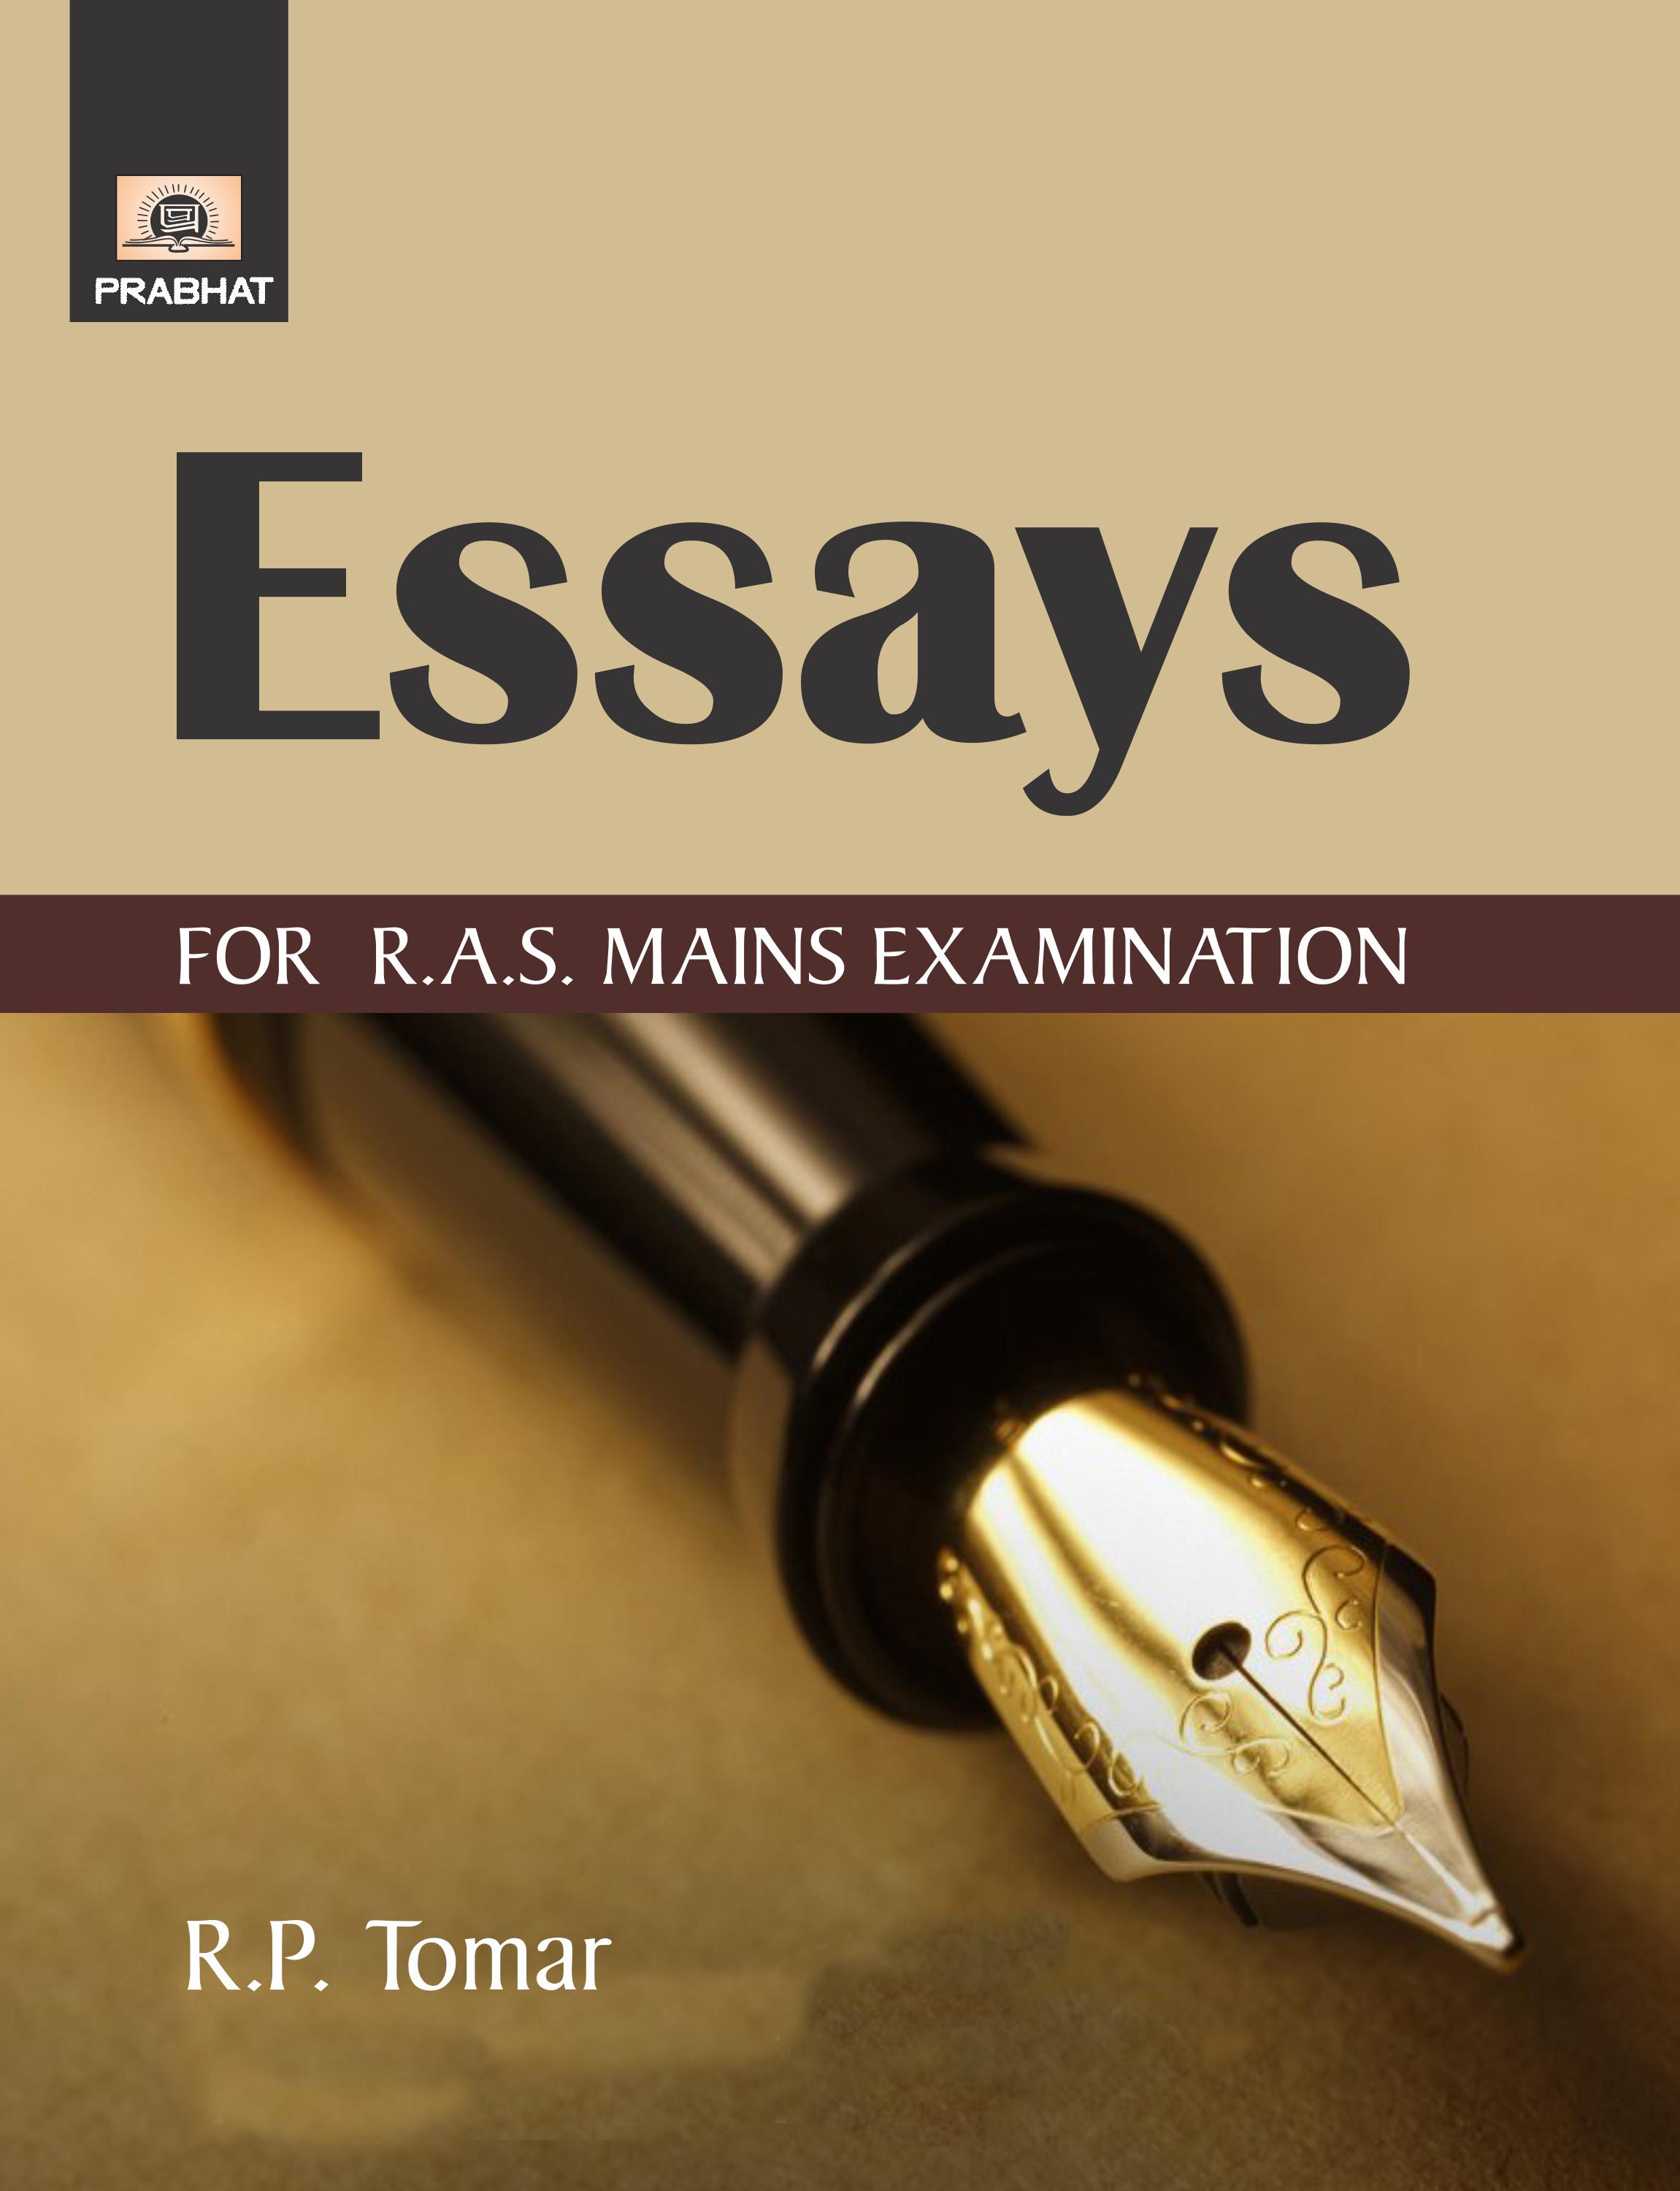 Essays For R.A.S. Mains Examination (PB)